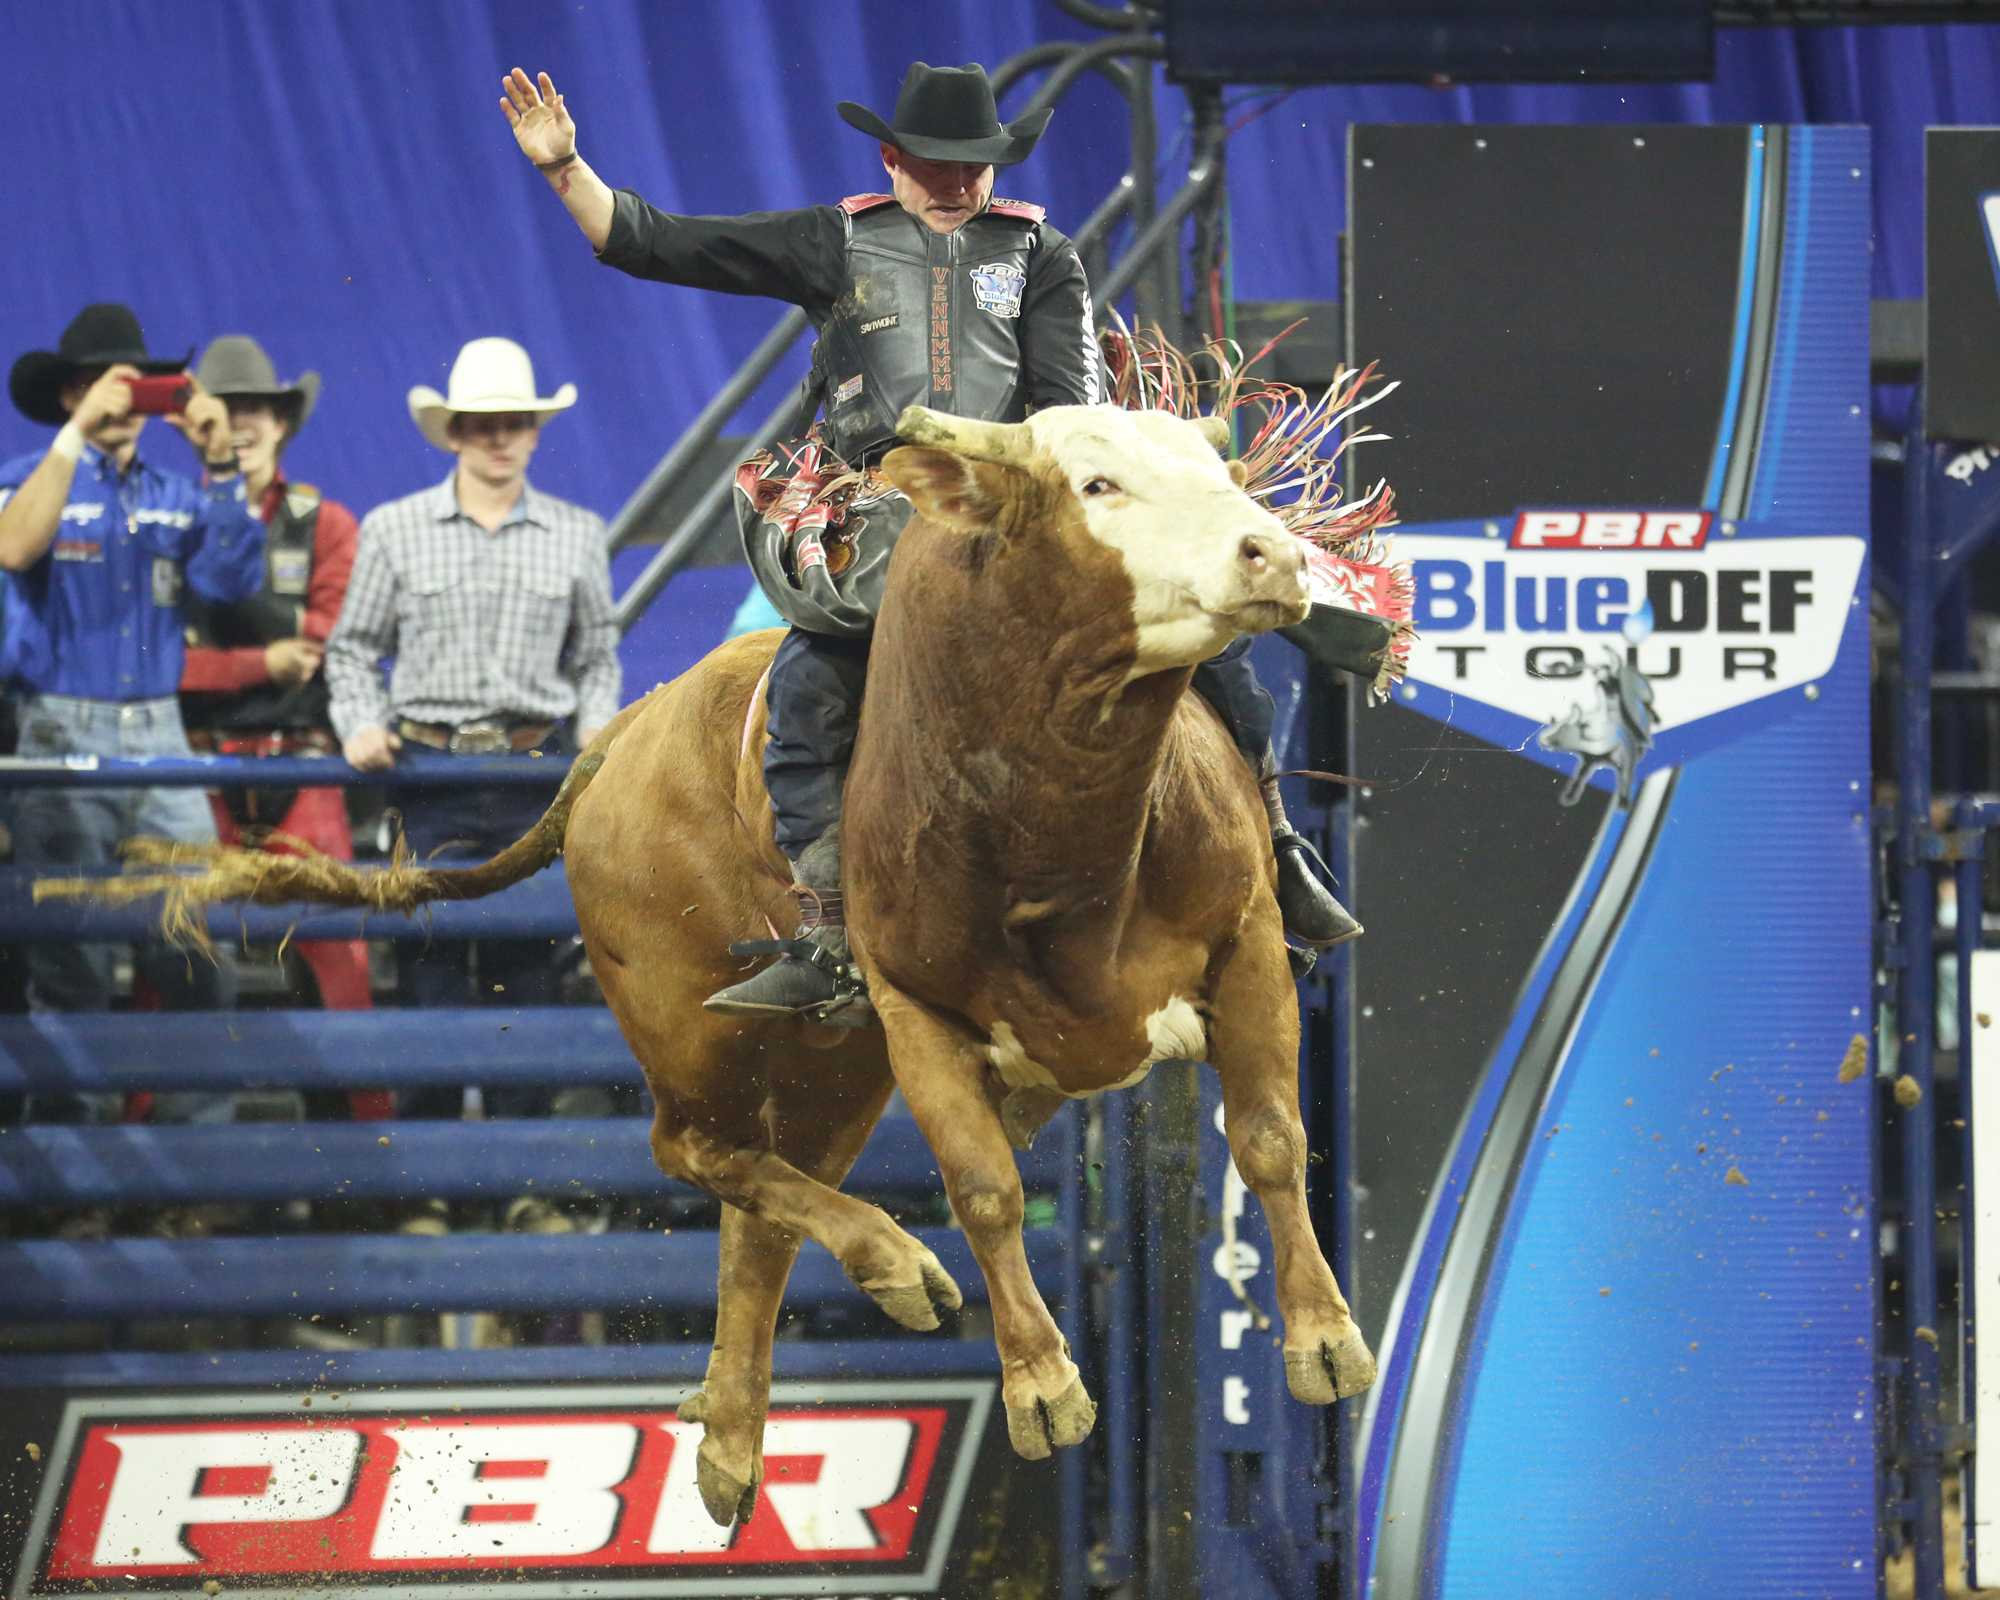 Venn Johns holds on tight as Deerango takes flight during the event Rabobank Arena on Saturday, Nov. 21.